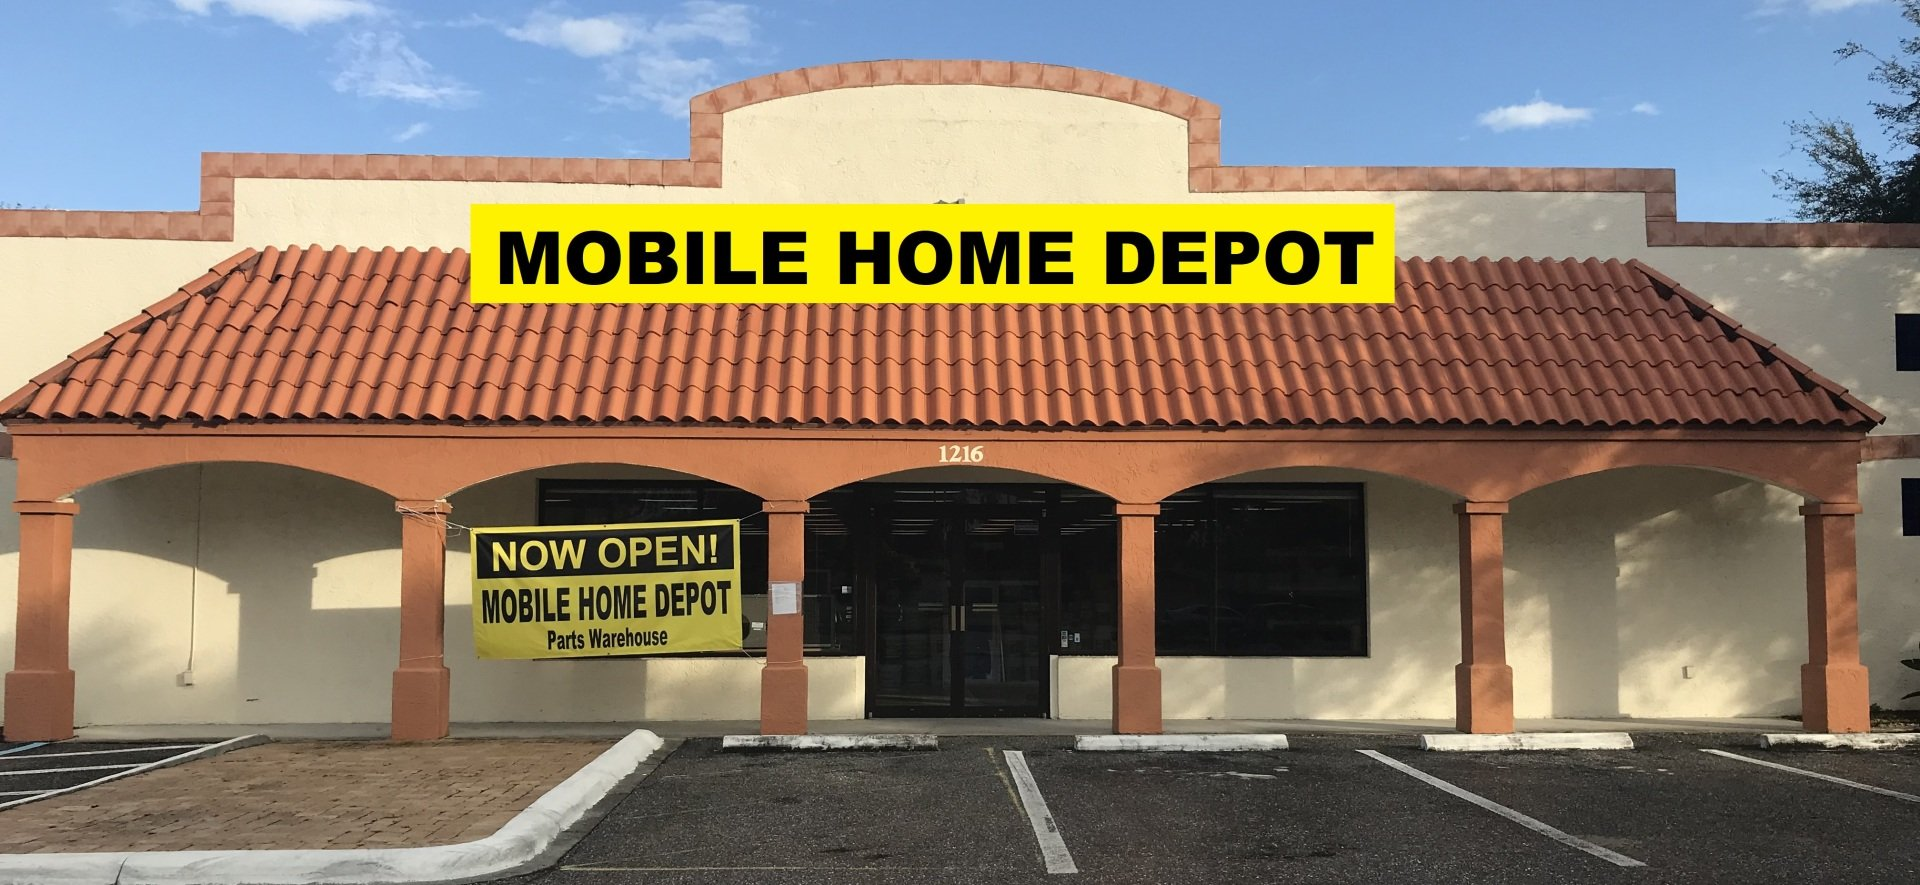 Mobile Home Parts Store | Florida & Arizona | Mobile Home Depot on carport canopy home depot, mobile home tubs and surrounds, mobile home doors home depot, mobile home accessories catalog, honda generators home depot,